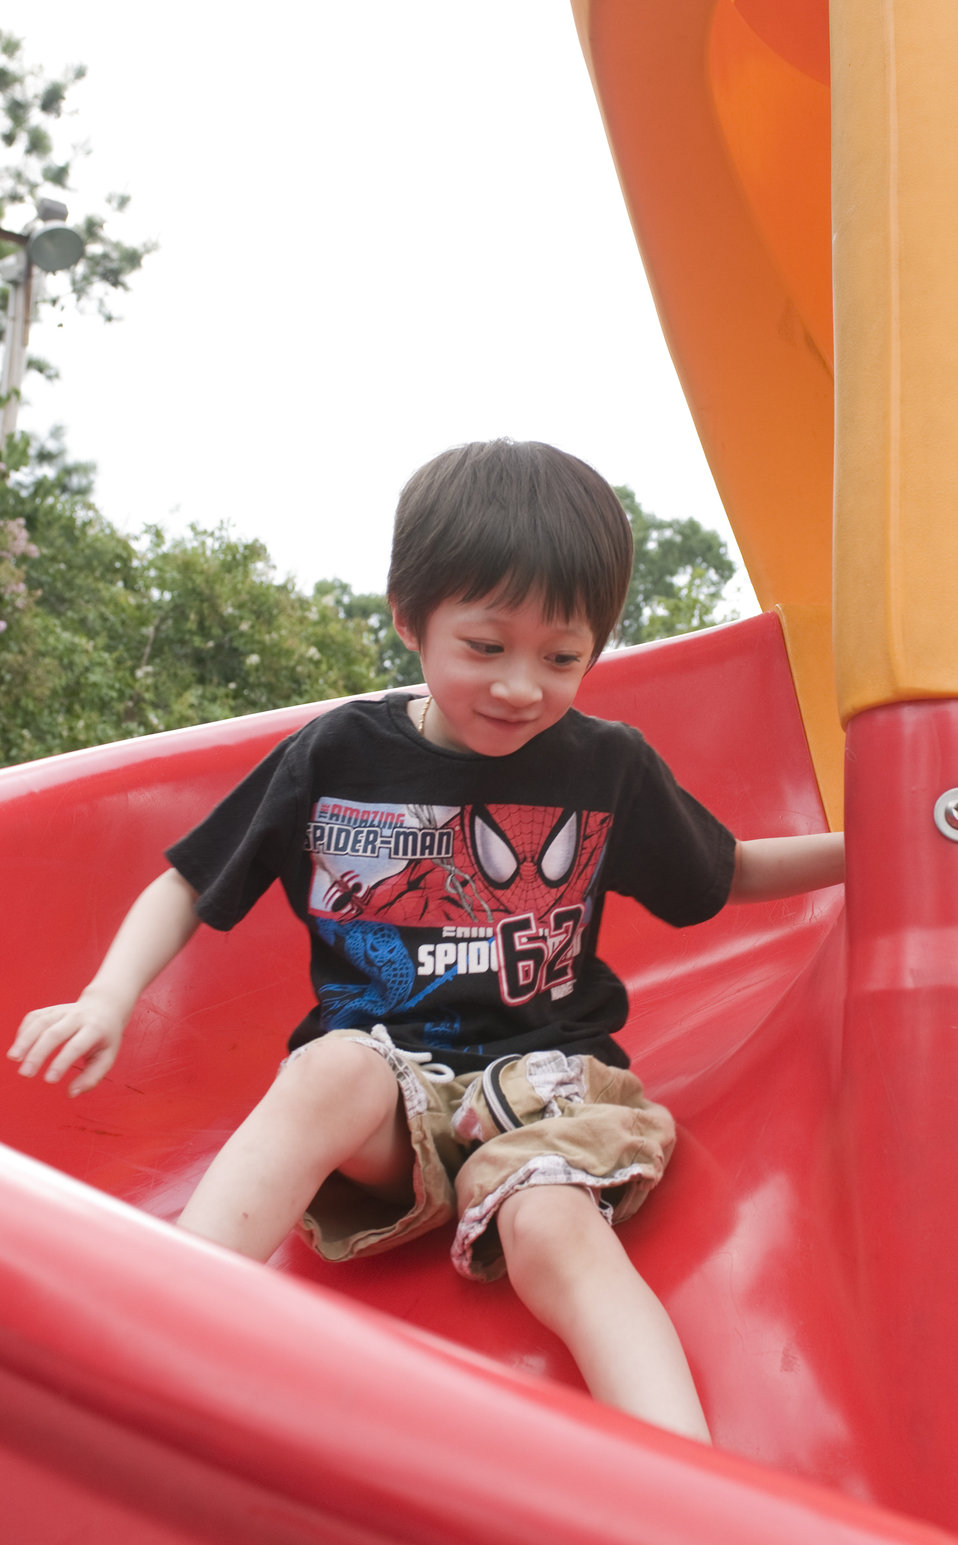 Under the watchful eye of his mother, this young boy was taking a trip down a bright red slide at a neighborhood playground. Note that he wa